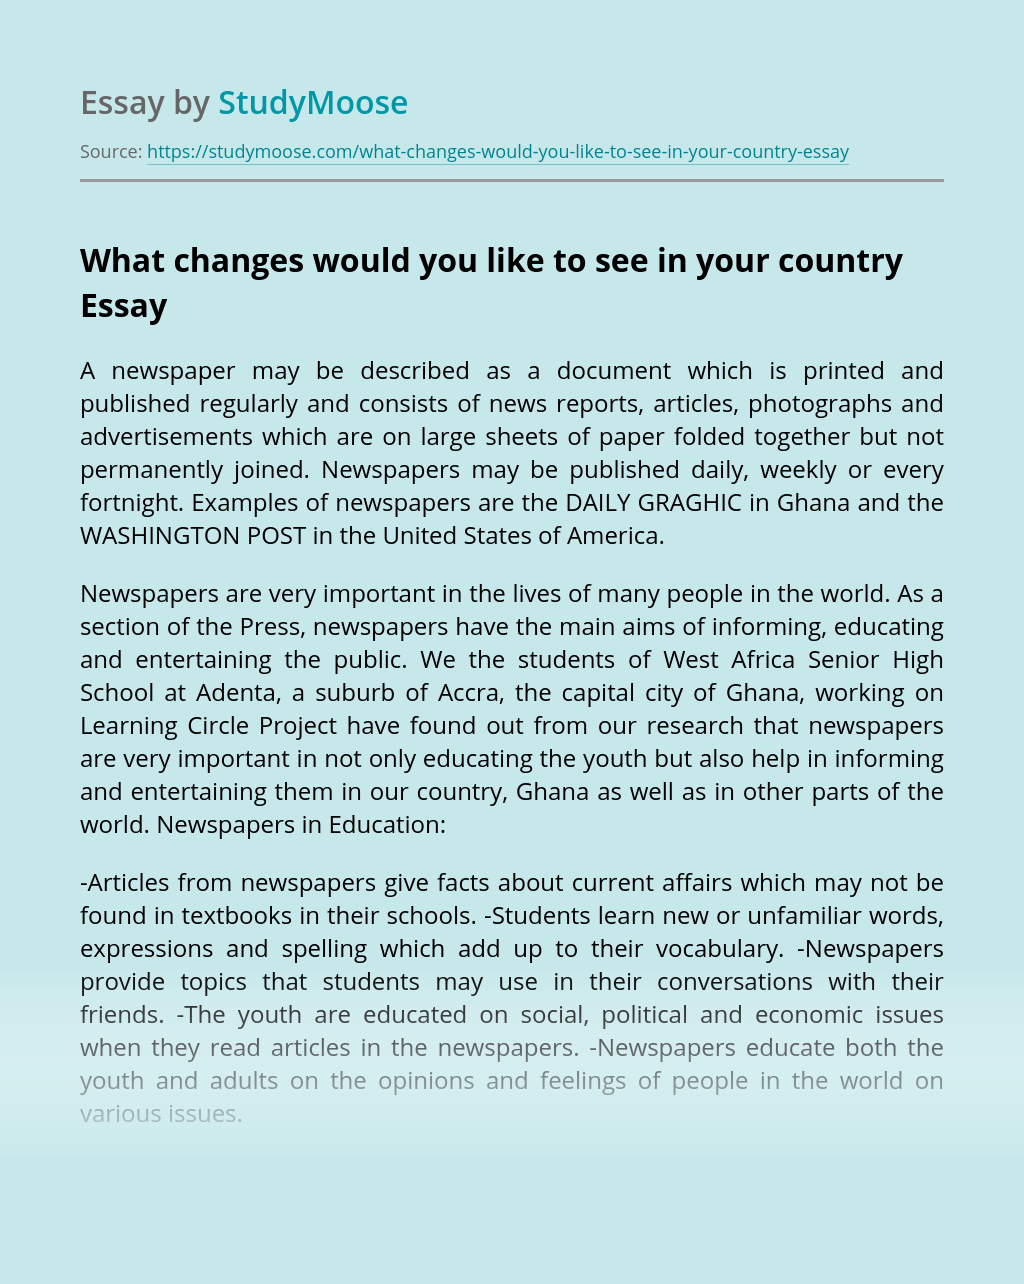 What changes would you like to see in your country